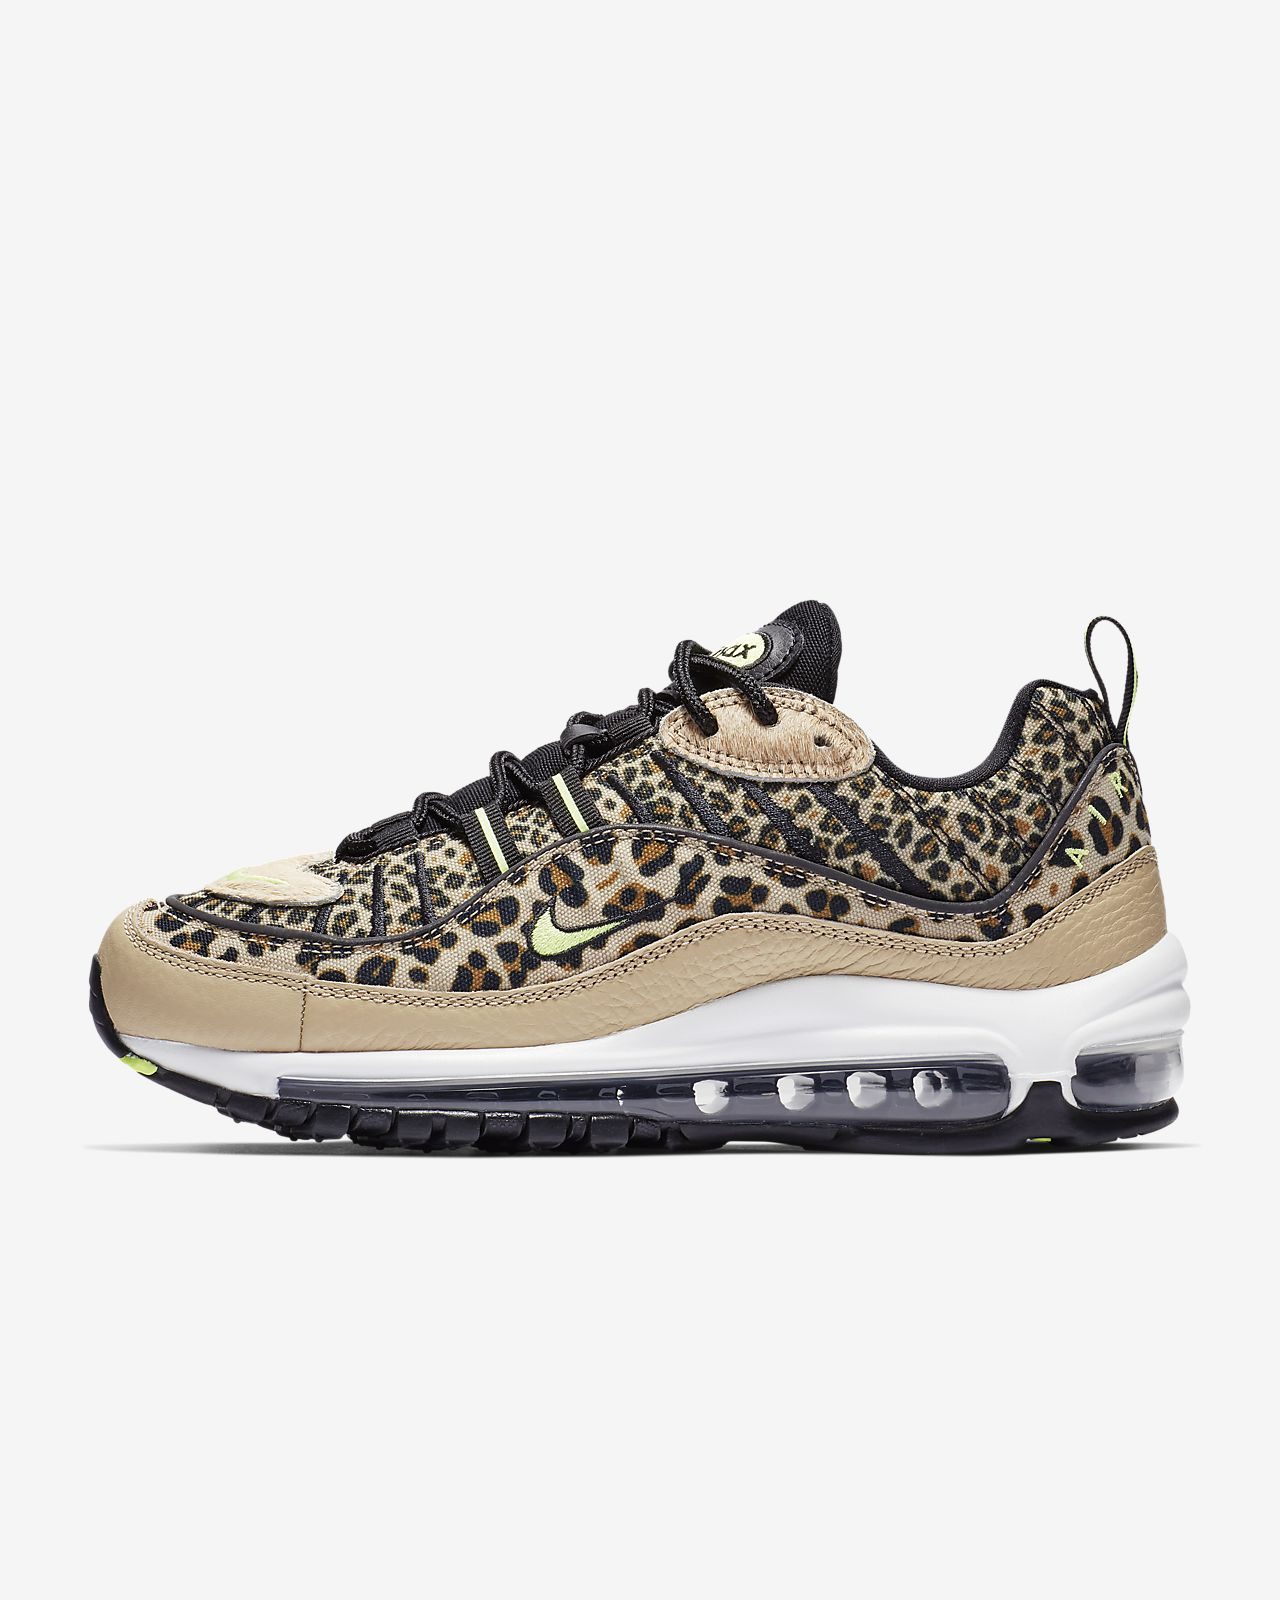 20809089df4 Nike Air Max 98 Premium Animal Women's Shoe. Nike.com